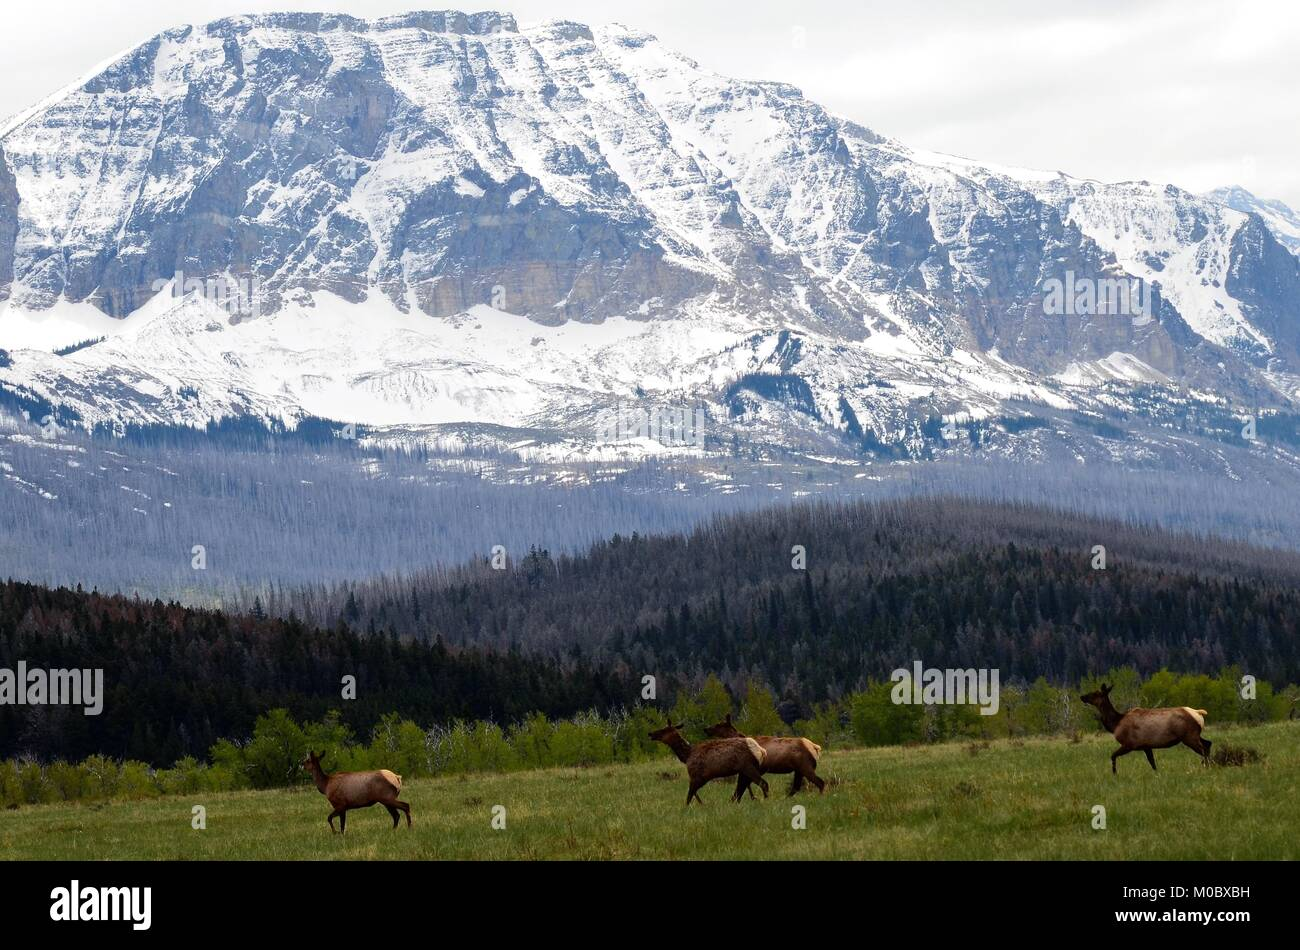 A herd of majestic wild elk move swiftly across a meadow, with a background of snow covered mountains and a forest - Stock Image